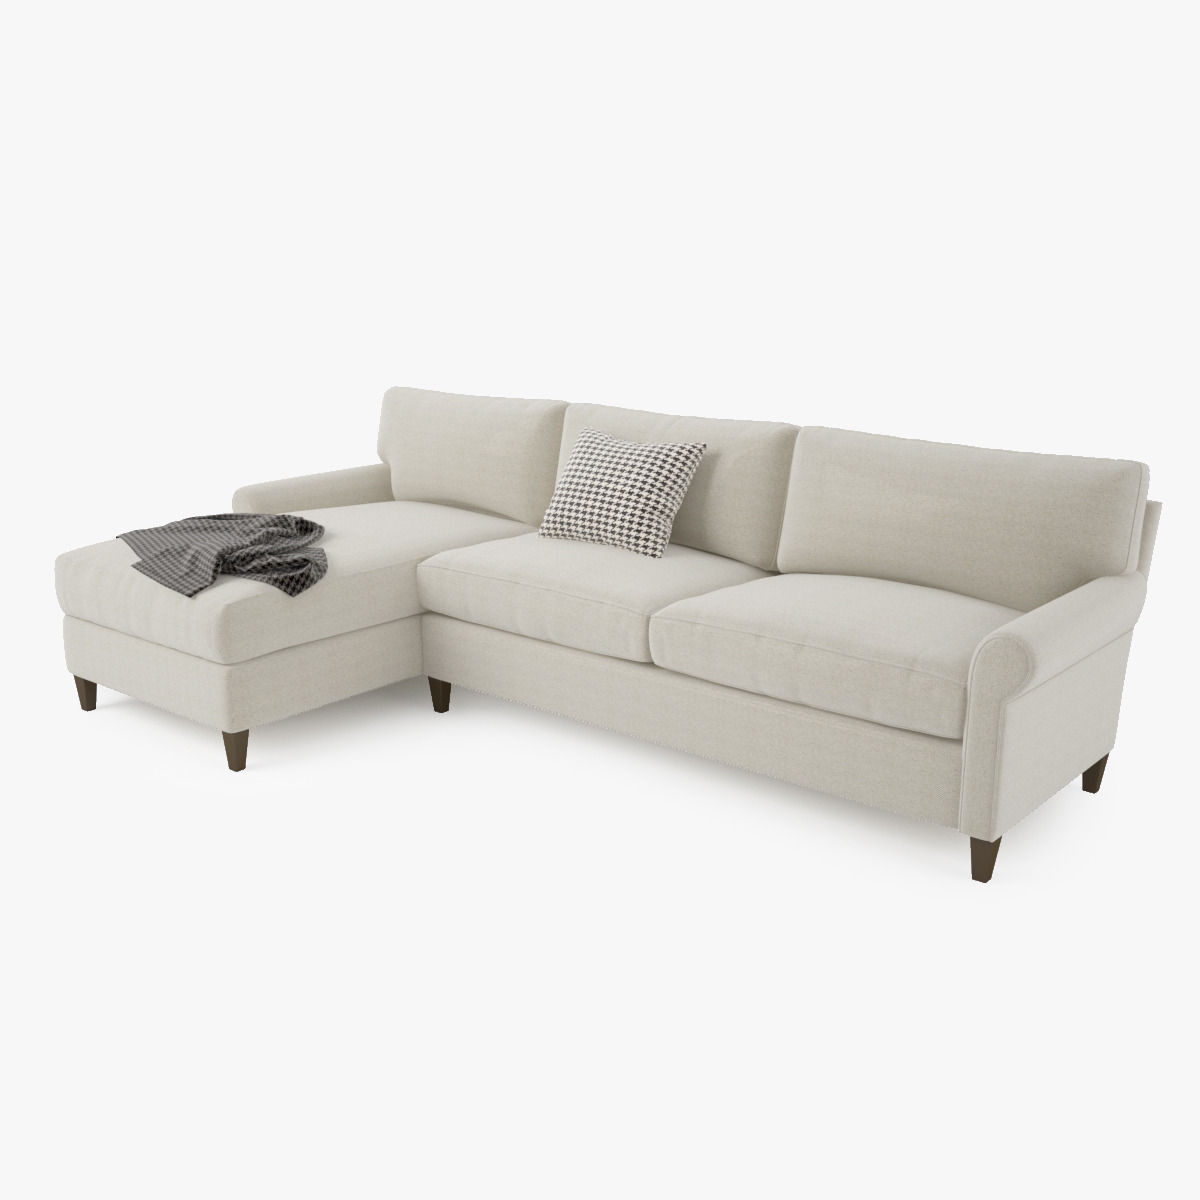 Lounge Sofa Crate and Barrel | Crate and Barrel Couch | Crate and Barrel Axis Couch